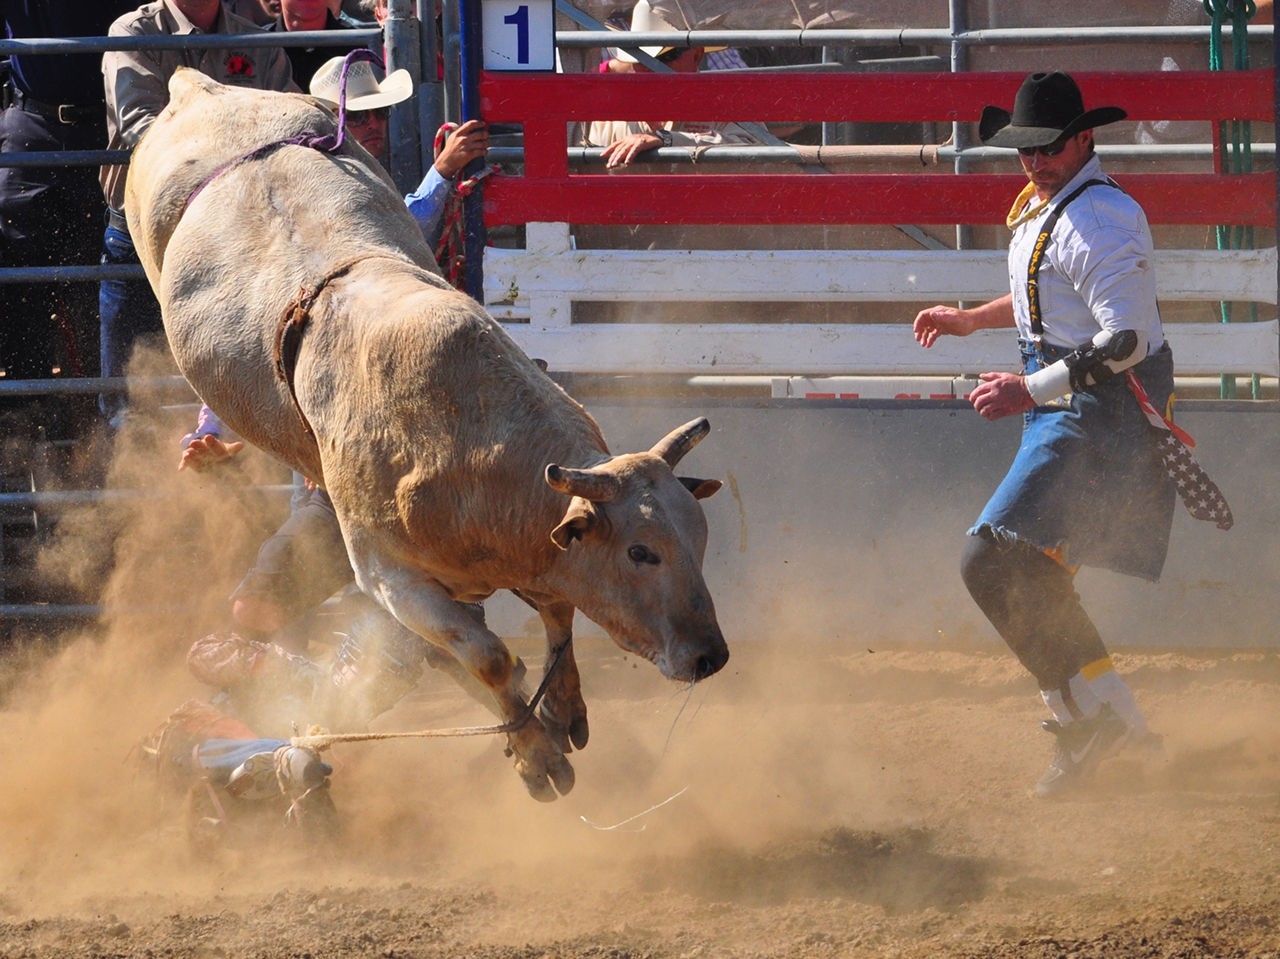 How Bulls Continue to be Abused in the Name of Tradition